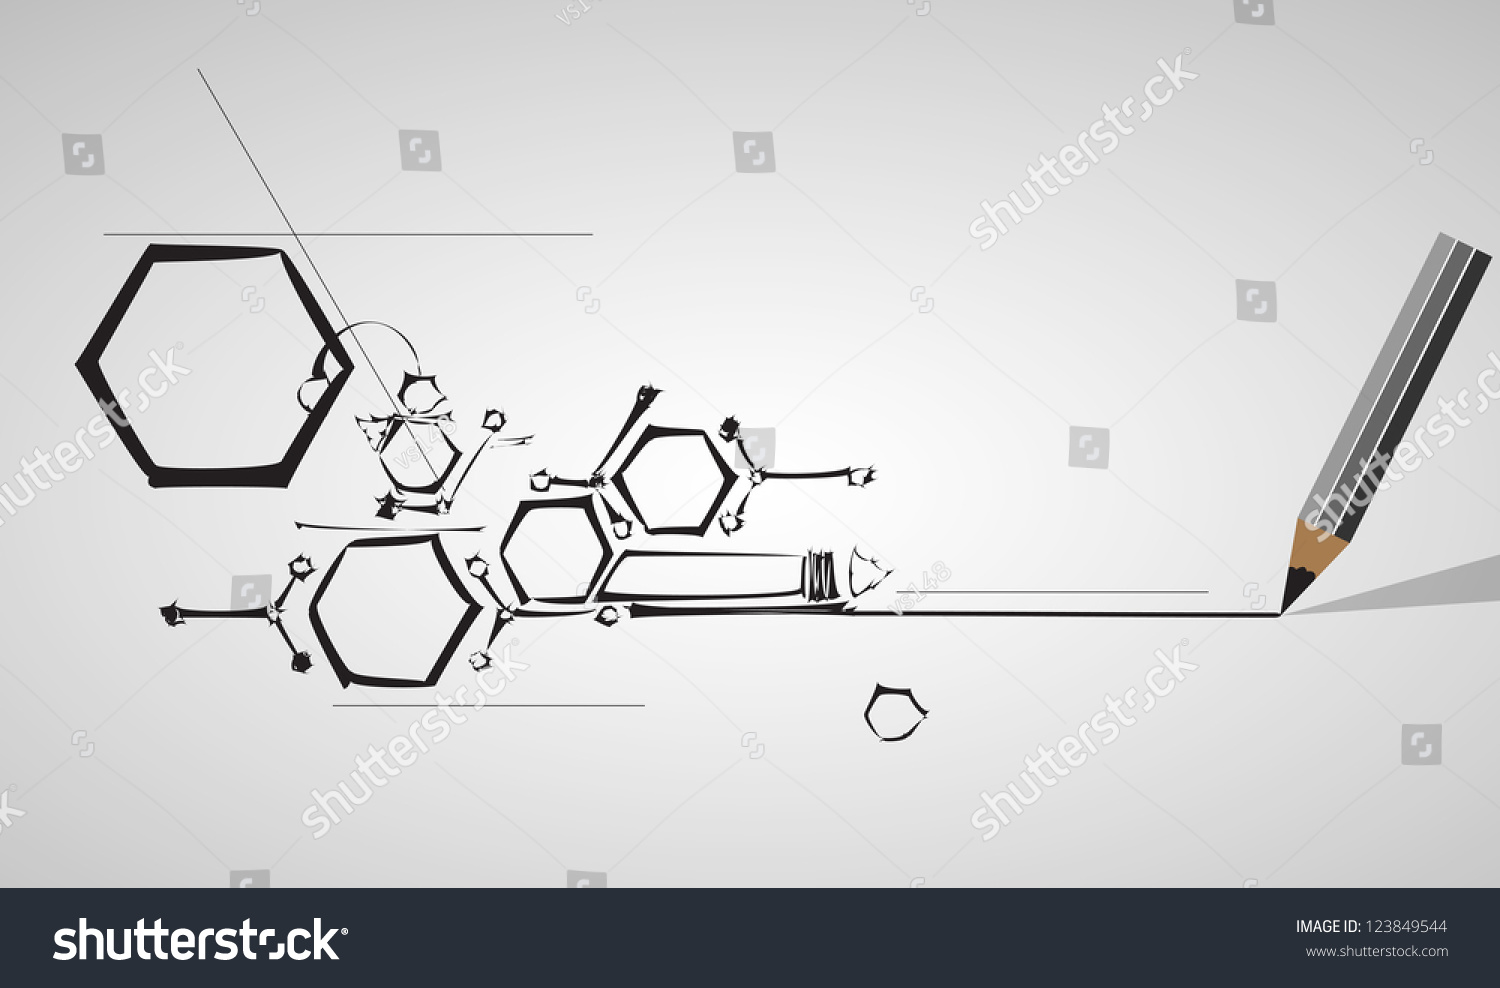 Abstract Drawing Computer Technology Business Background